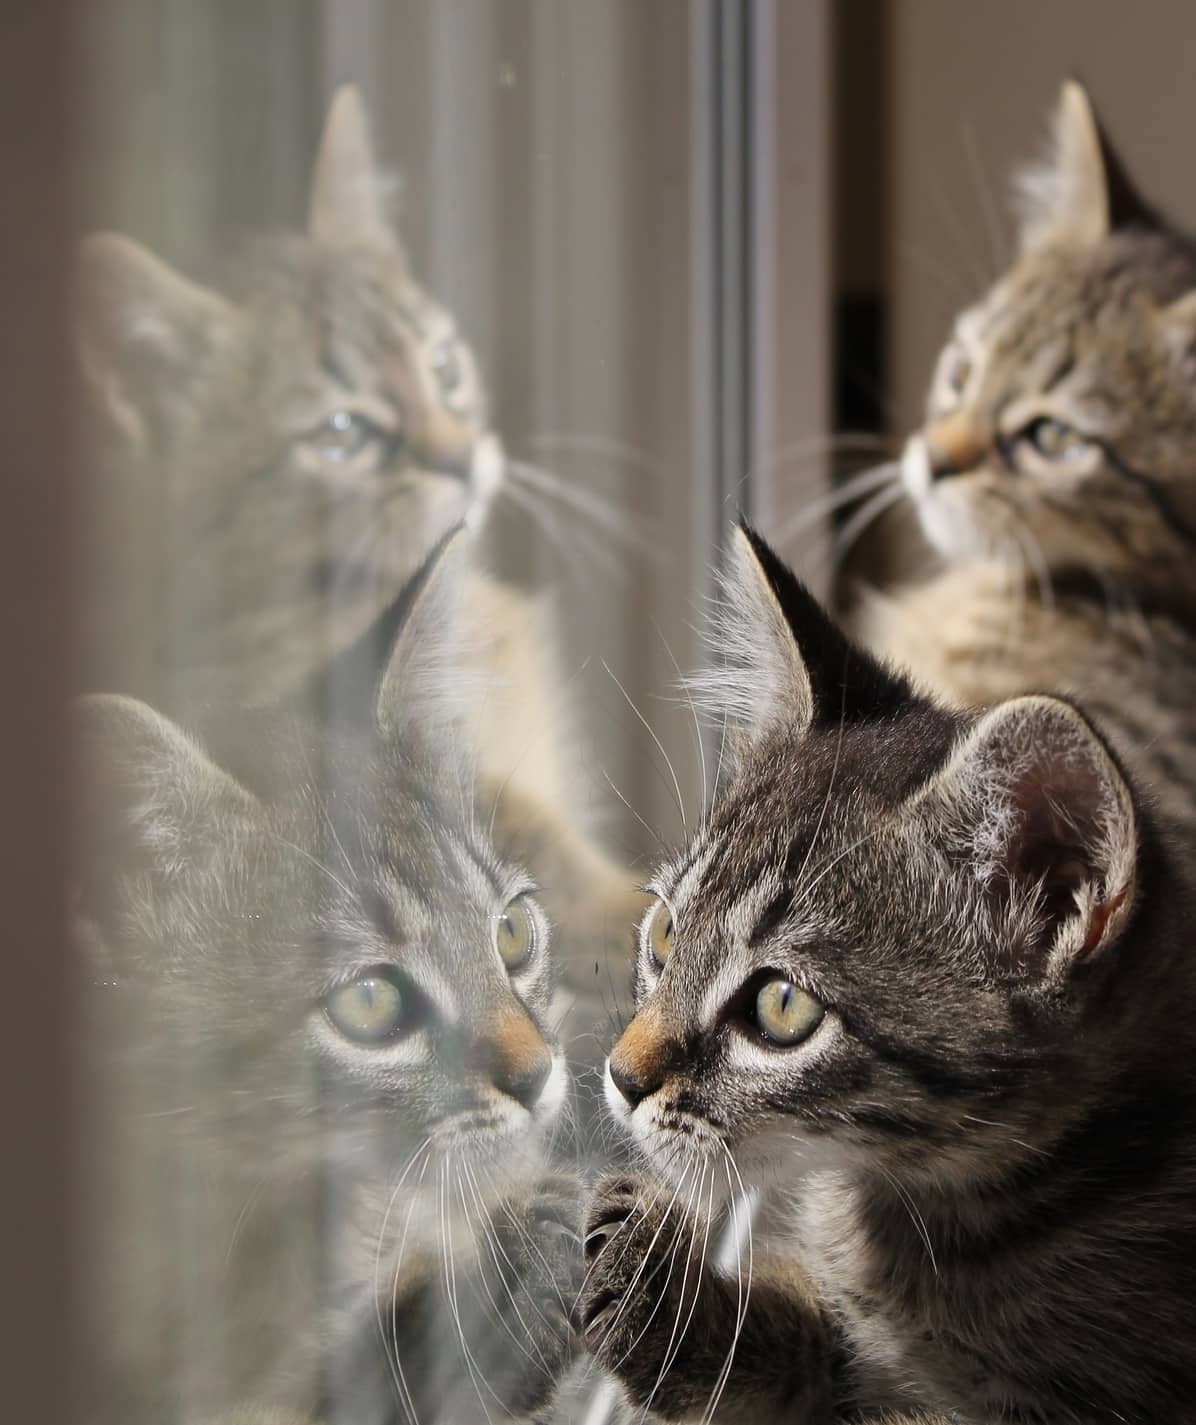 Tabby kittens look in a window pane with their reflections on the window